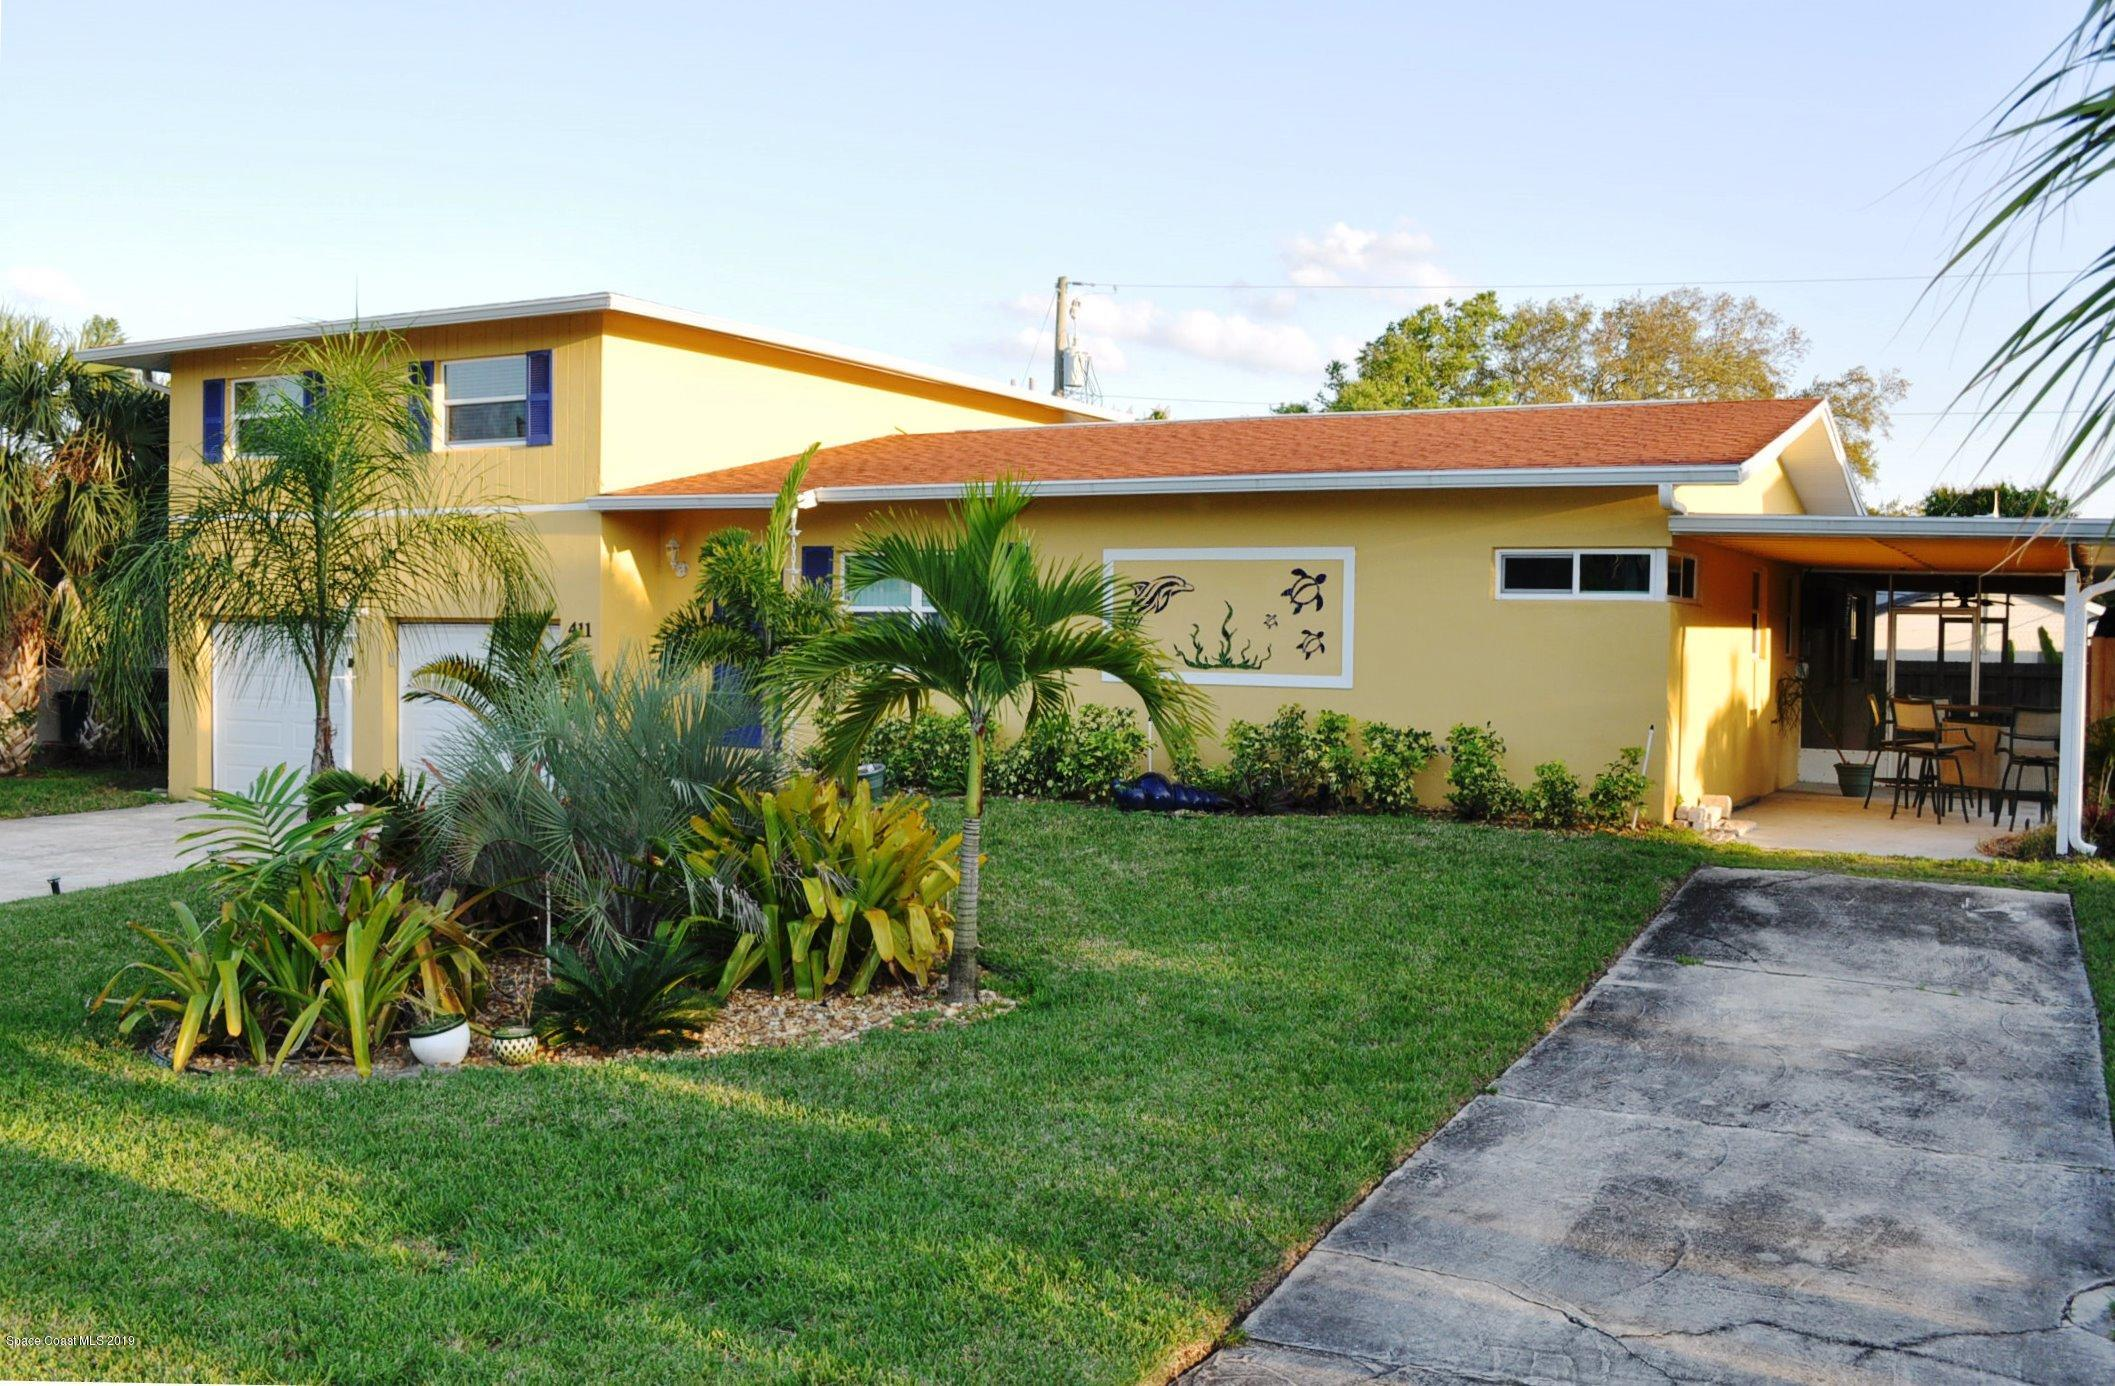 Single Family Home for Sale at 411 9th 411 9th Indialantic, Florida 32903 United States